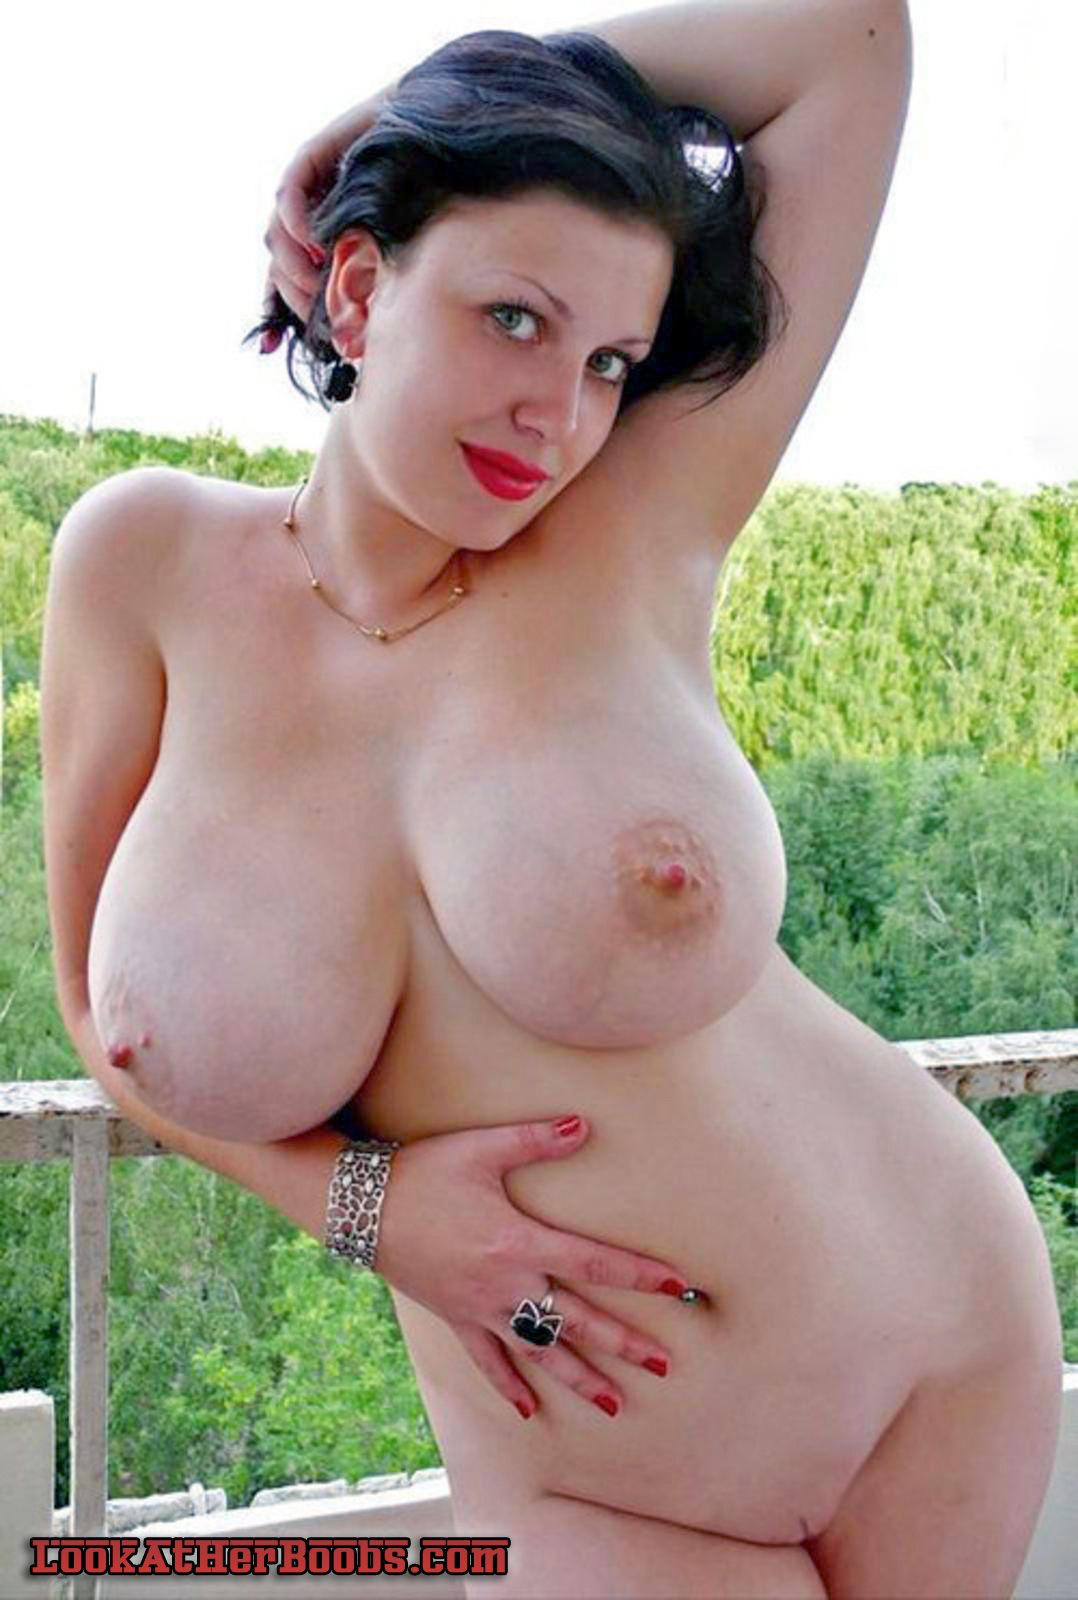 Huge natural tits nude-2289